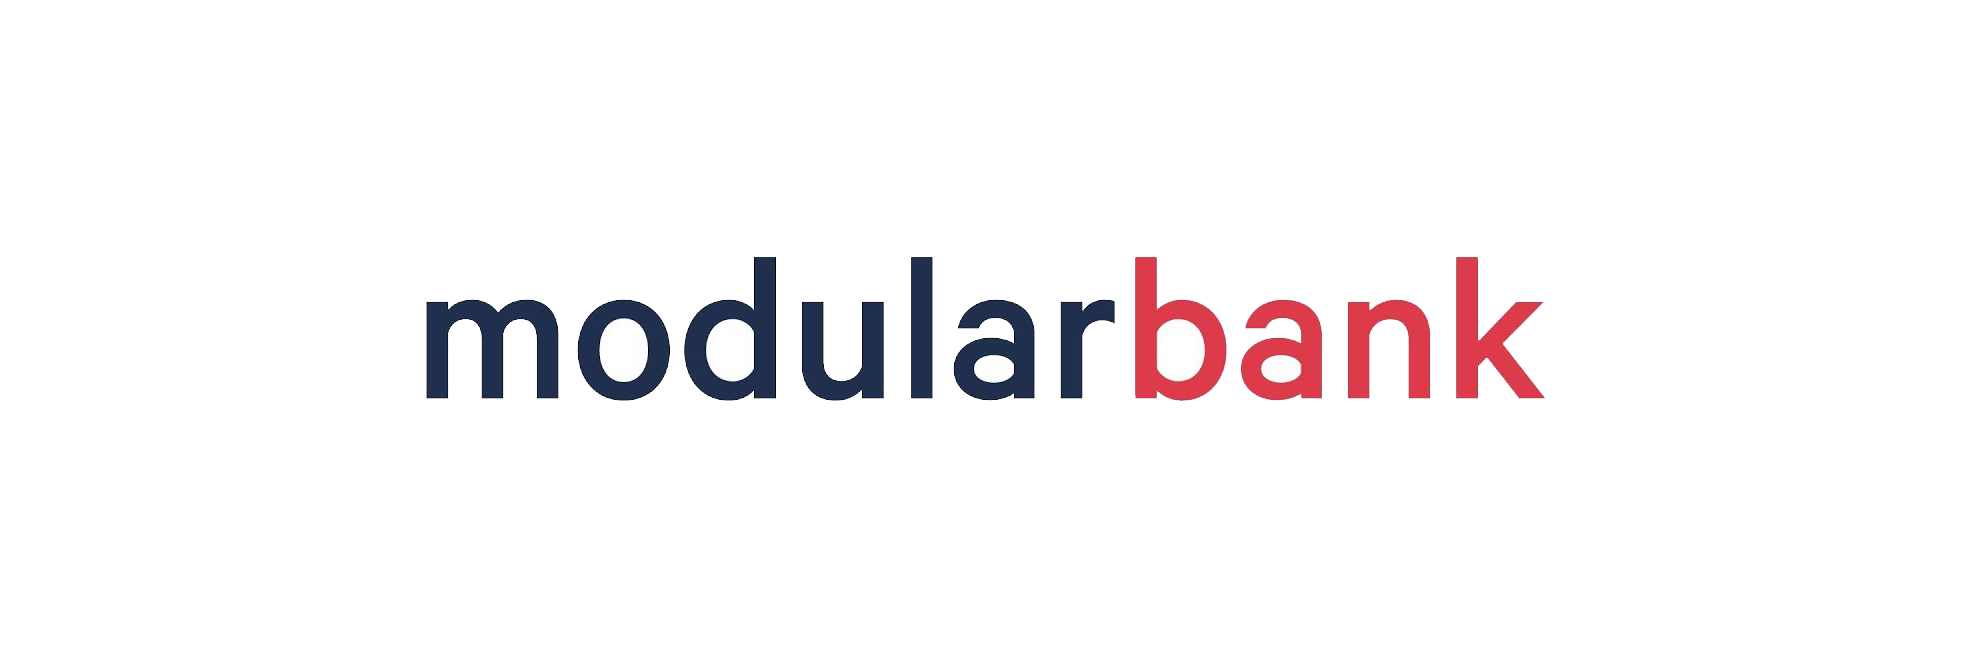 Modularbank Partners With Nets to Extend the Offering of Its Core Banking Platform